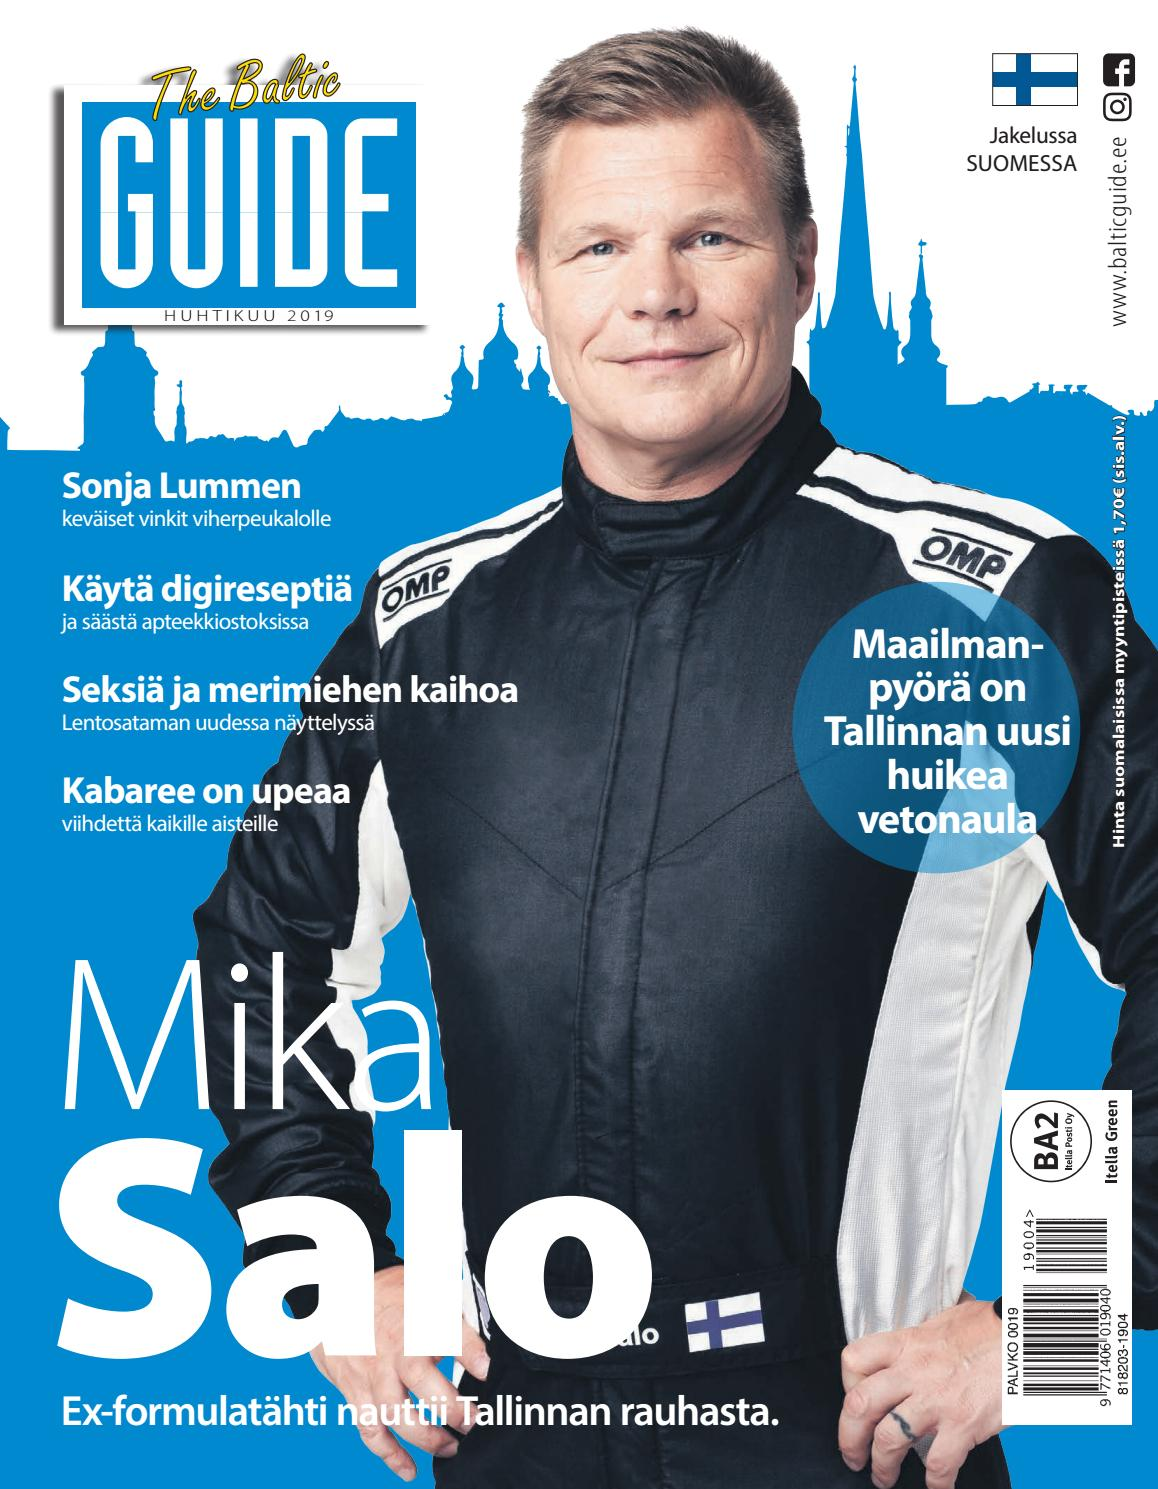 Huhtikuun The Baltic Guide On Ilmestynyt By The Baltic Guide Issuu